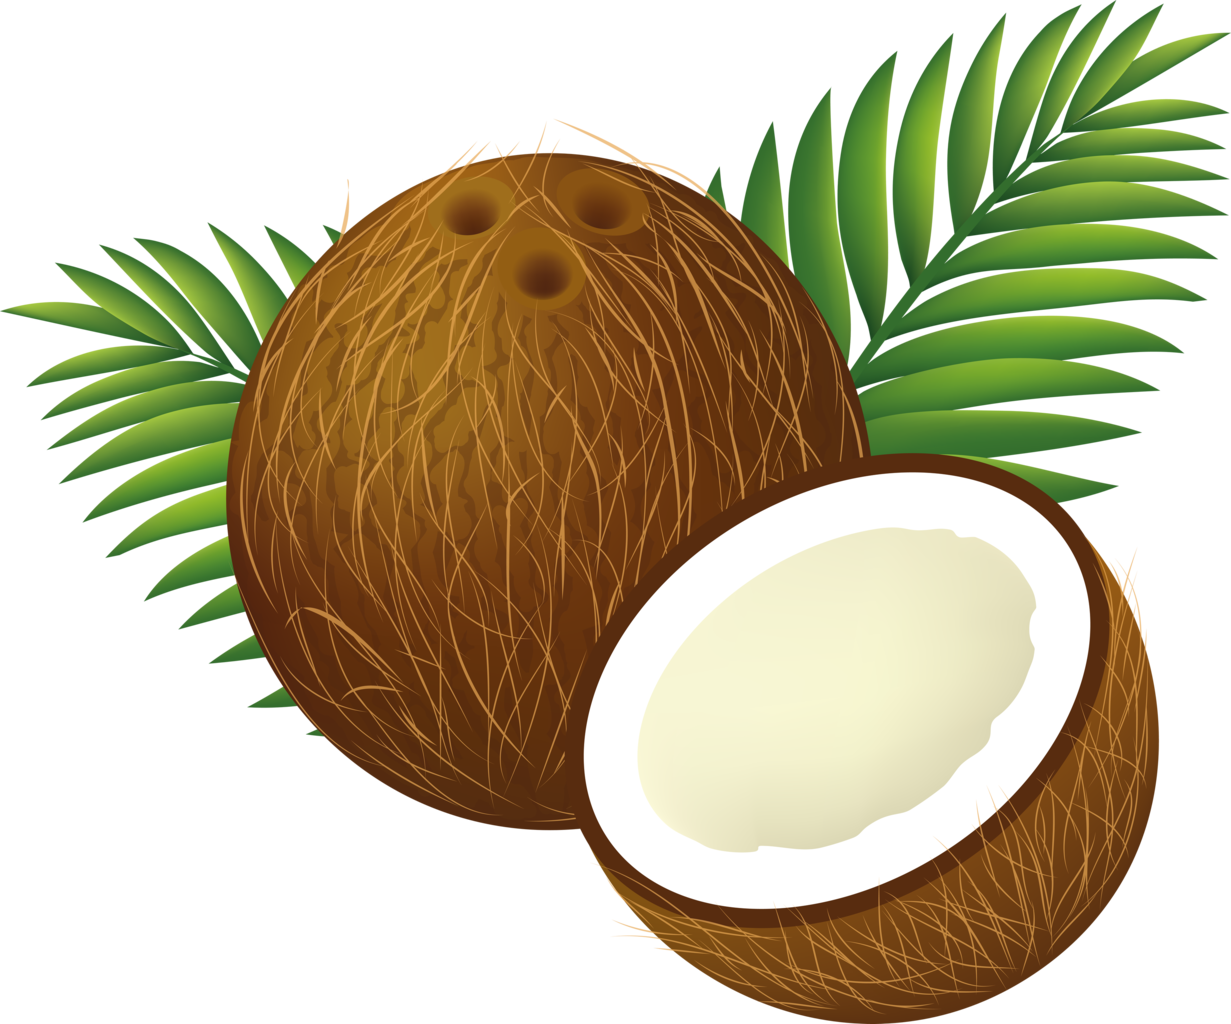 file coconut clipart cartoon png wikimedia commons rh commons wikimedia org coconut clipart png coconut clipart free download